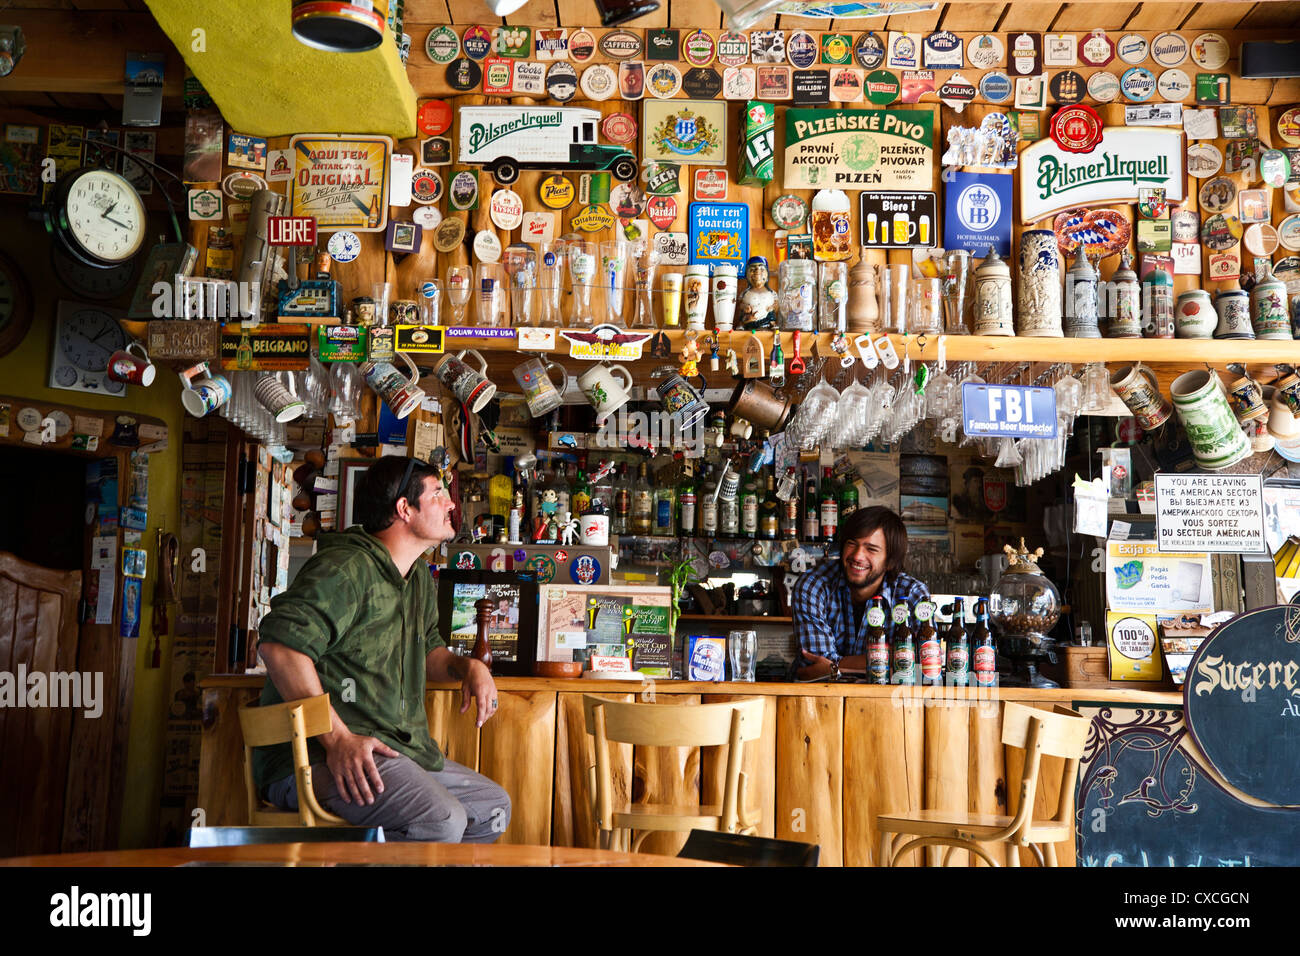 Australis micro brewery in Villa la Angostura has won numeors prizes by the Beer World Cup organization, Patagonia, - Stock Image